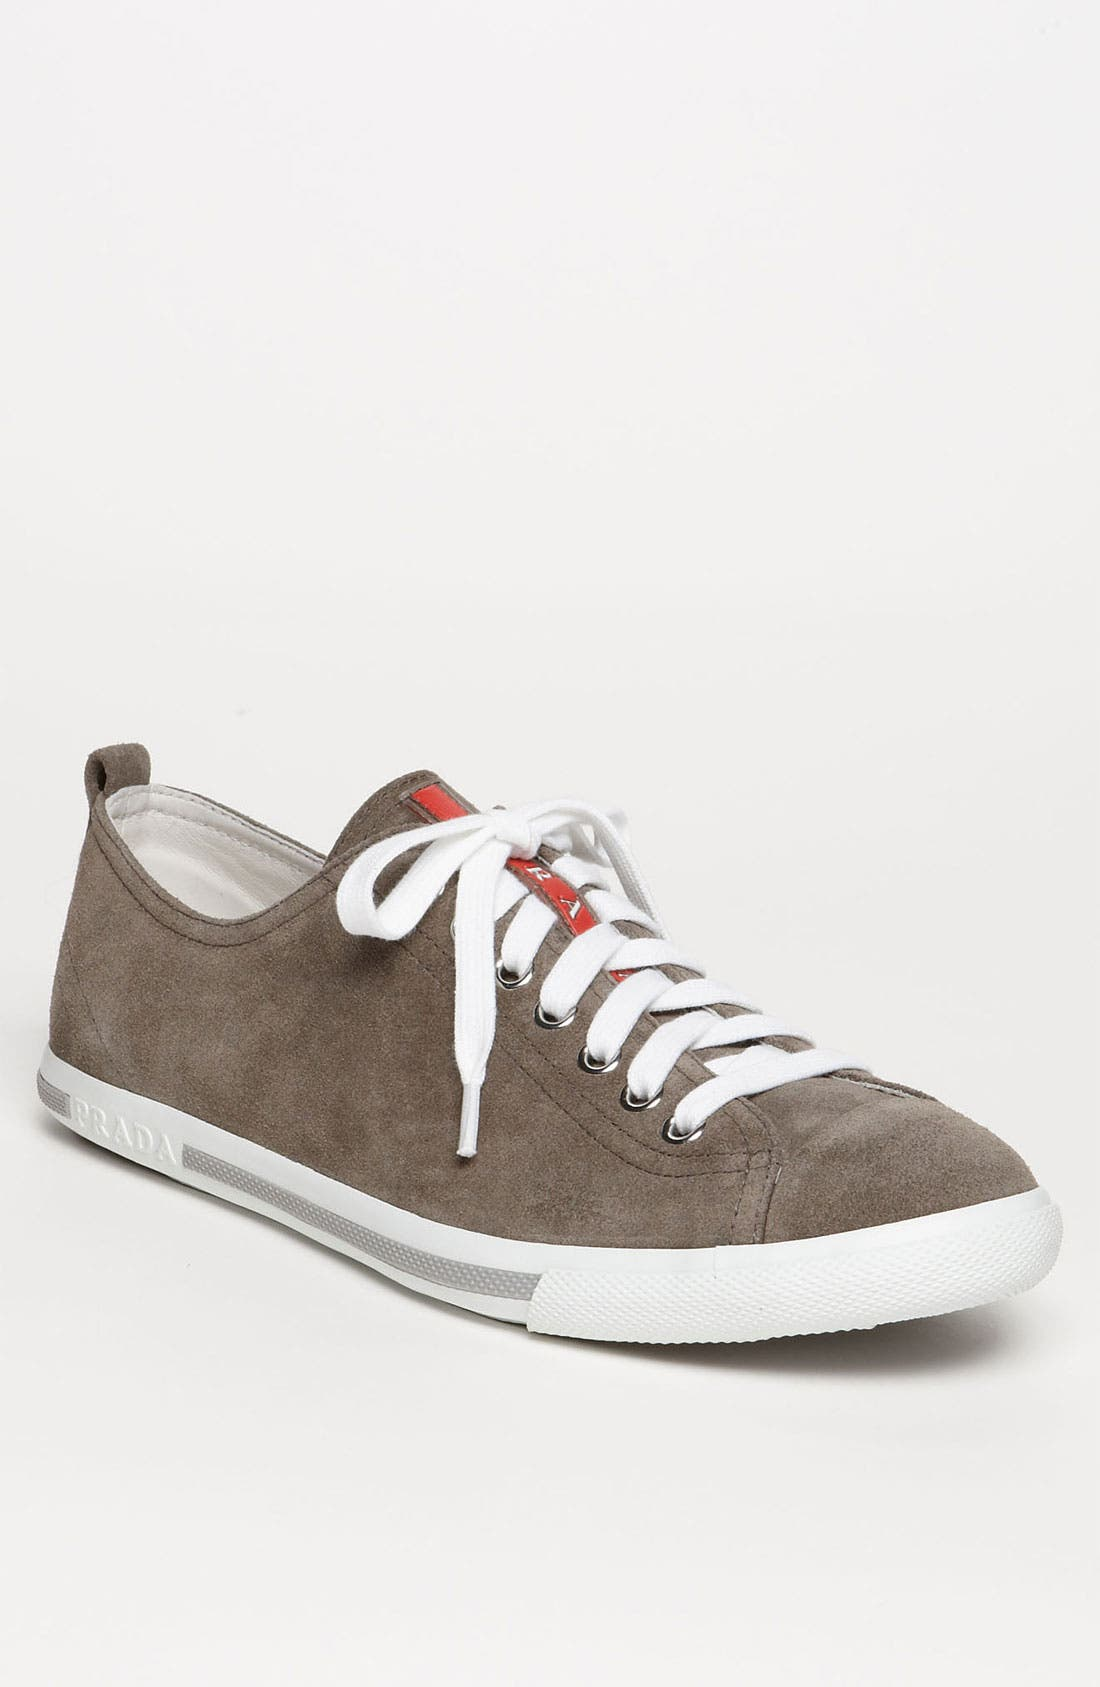 Alternate Image 1 Selected - Prada Low Profile Suede Sneaker